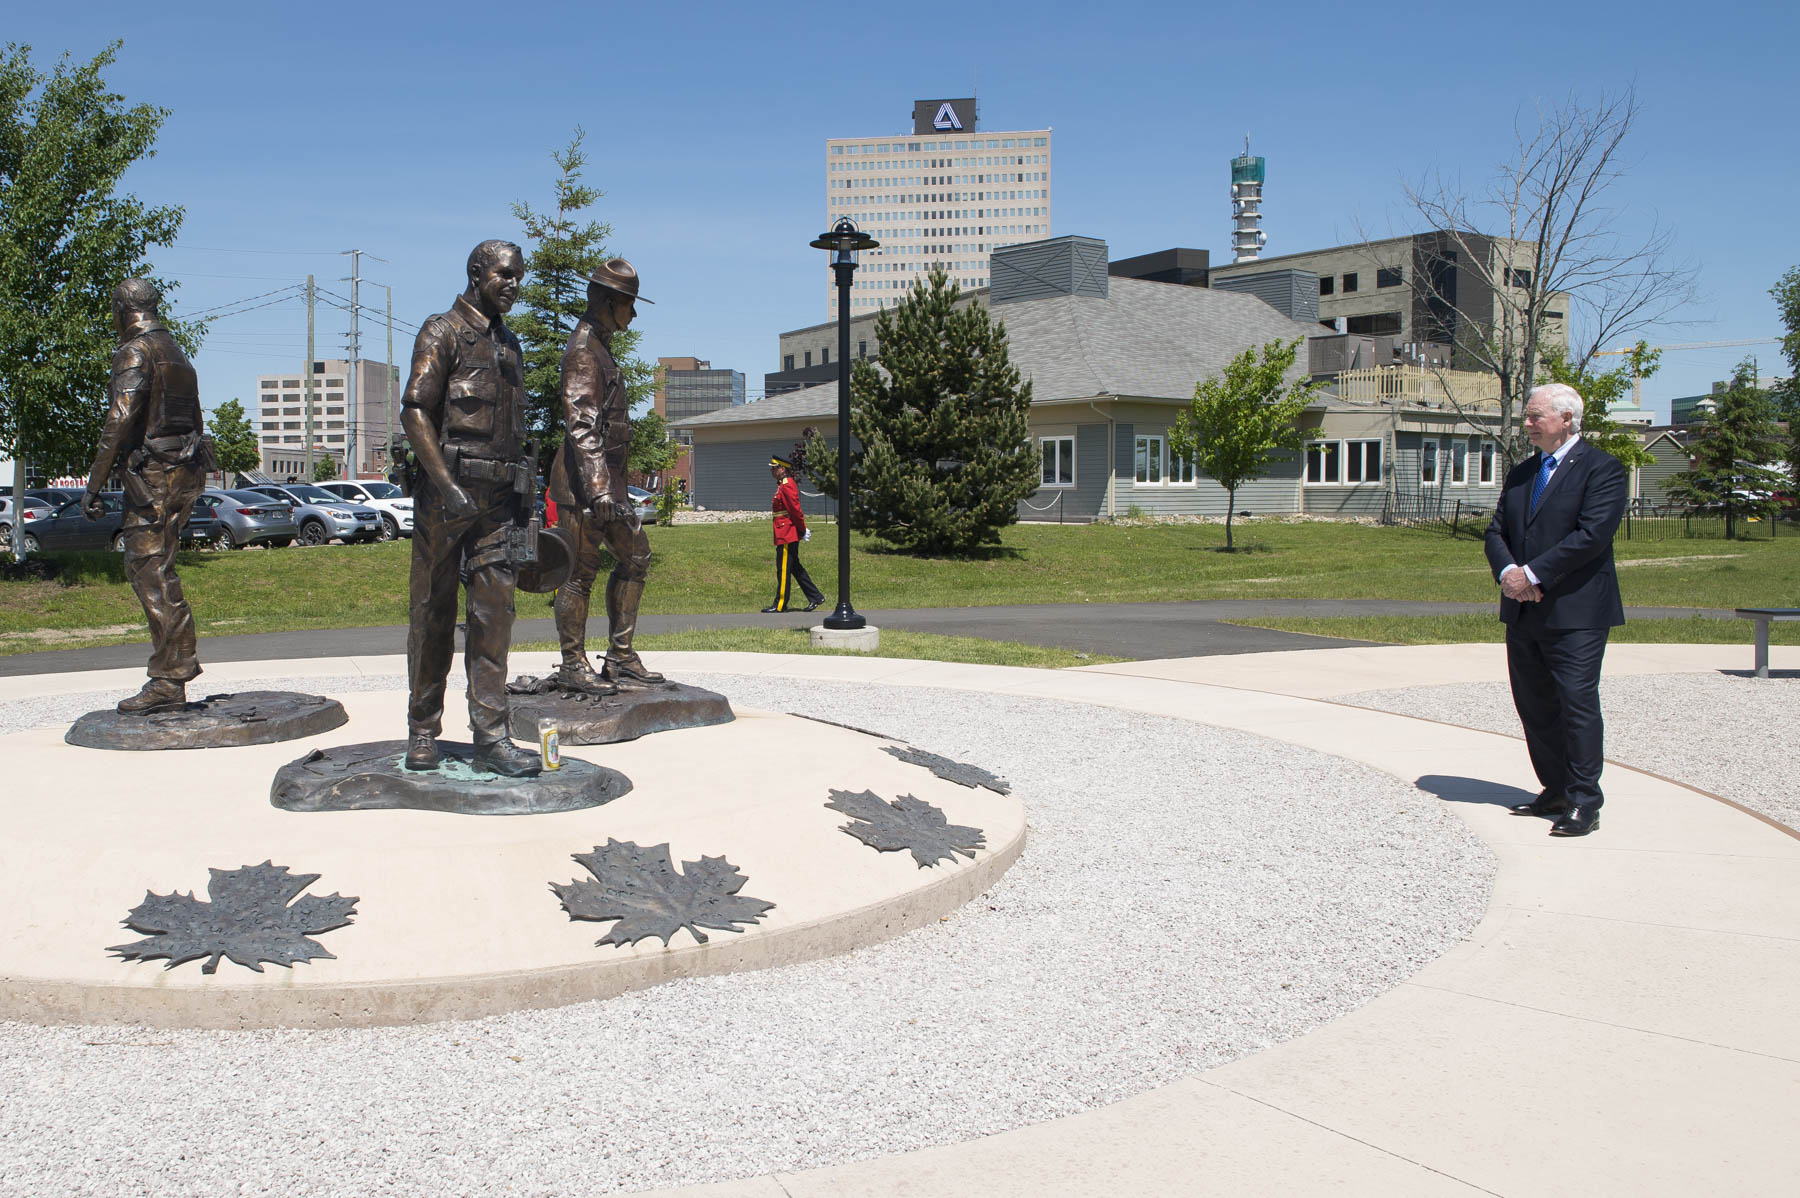 The Governor General visited the RCMP Memorial that pays tribute to 3 fallen members, killed on June 4, 2014.